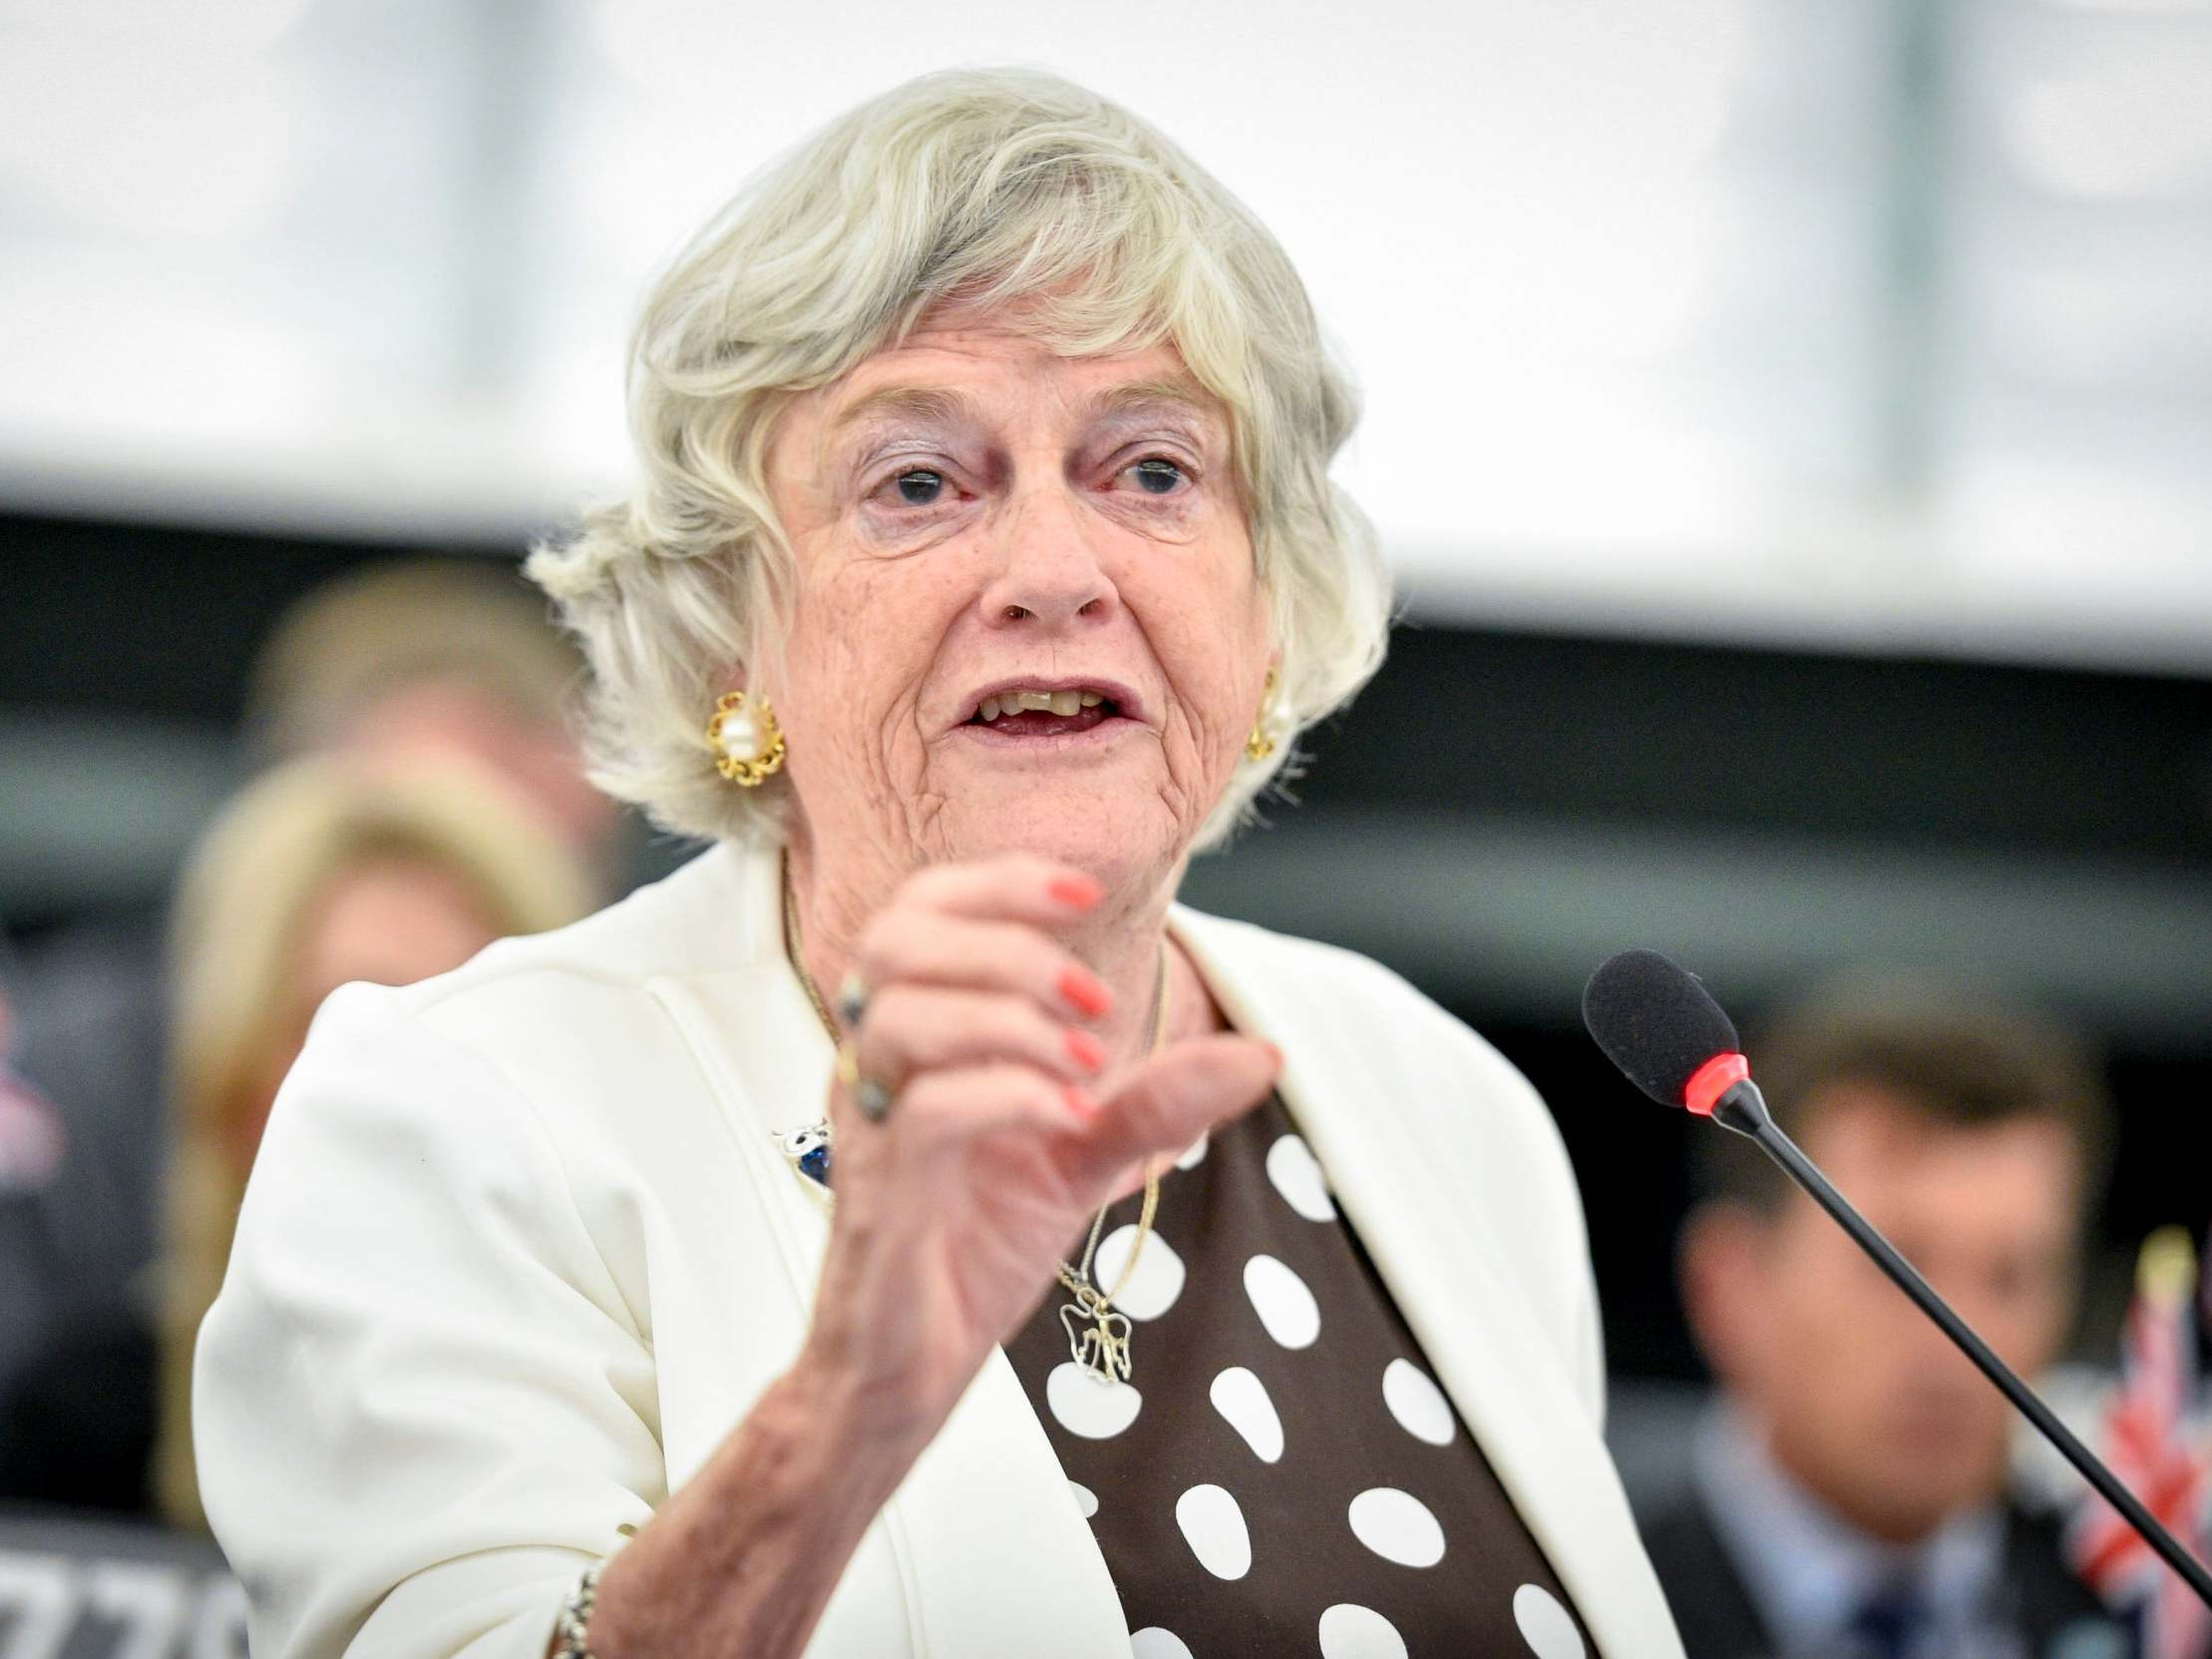 Ann Widdecombe: Fury as MEP compares Brexit to 'slaves rising up against their owners' 2